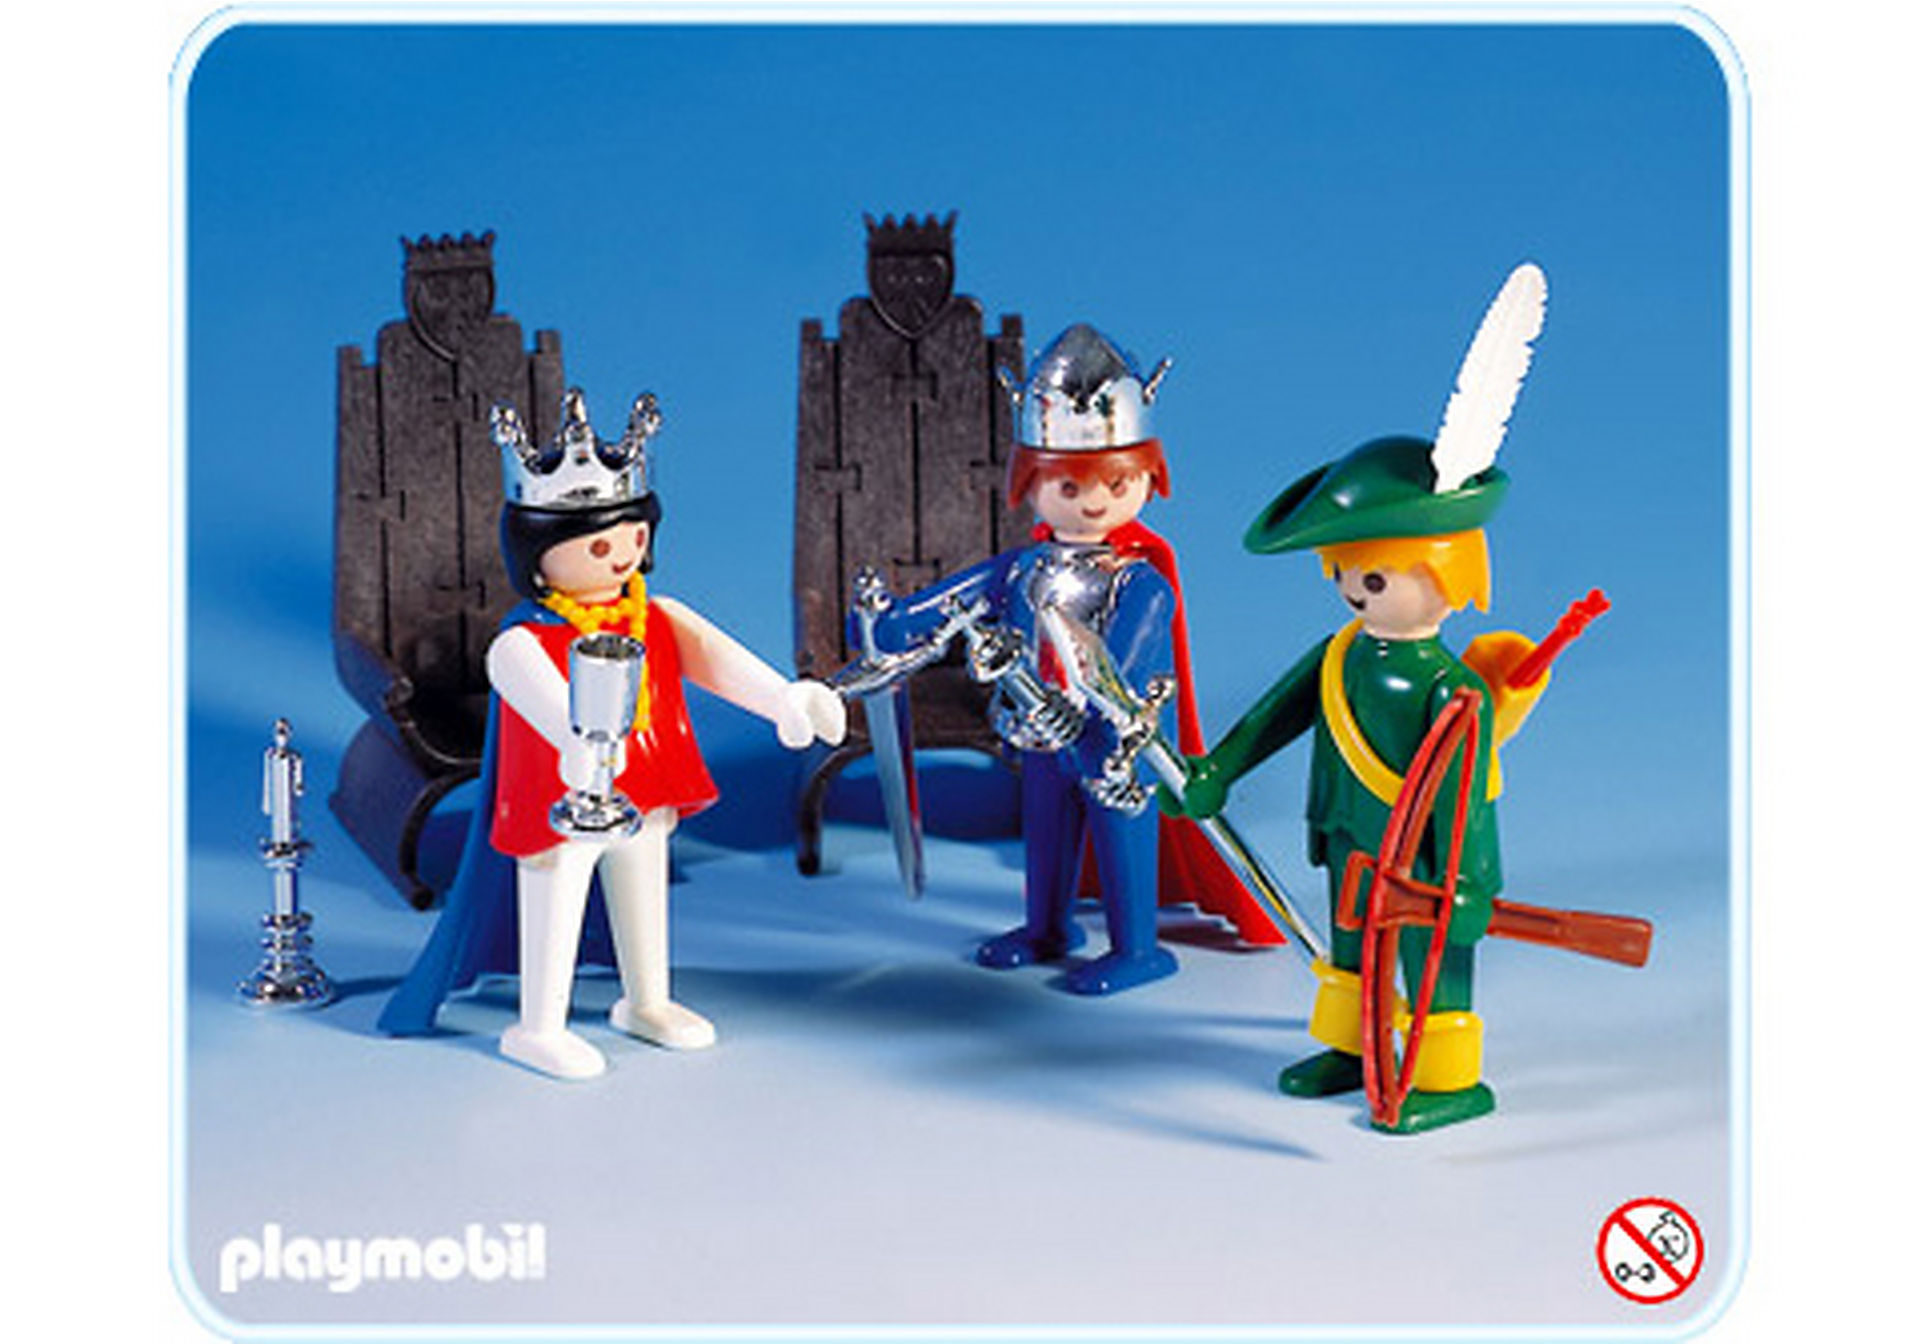 http://media.playmobil.com/i/playmobil/3568-A_product_detail/Courtisans